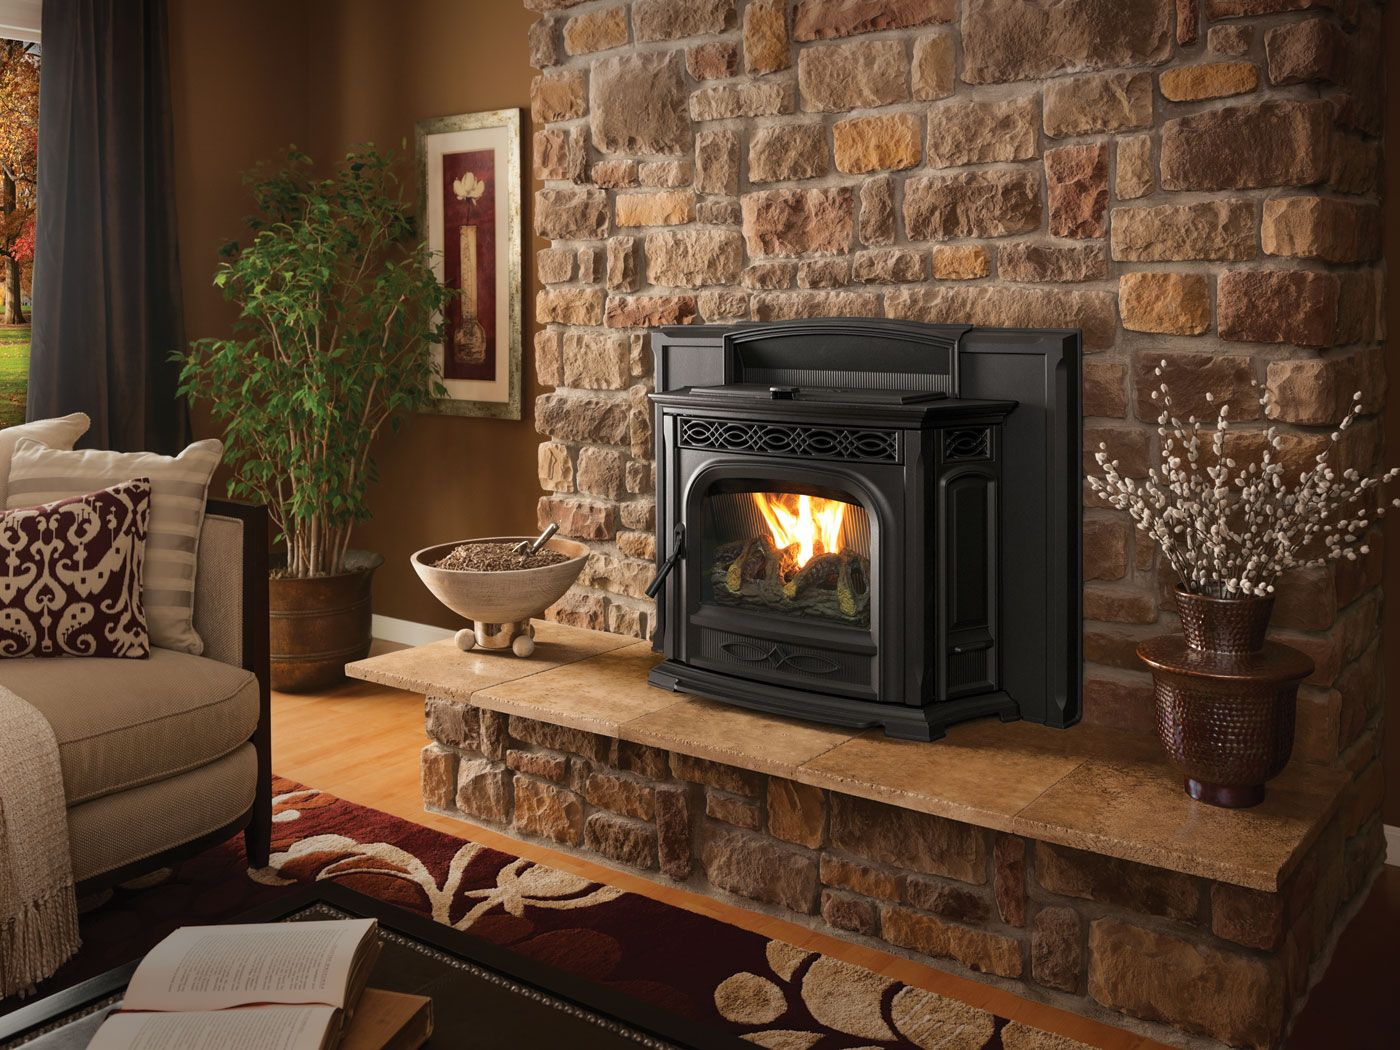 Harman Fireplace Insert New 50 Best Harman Stoves Images In 2019